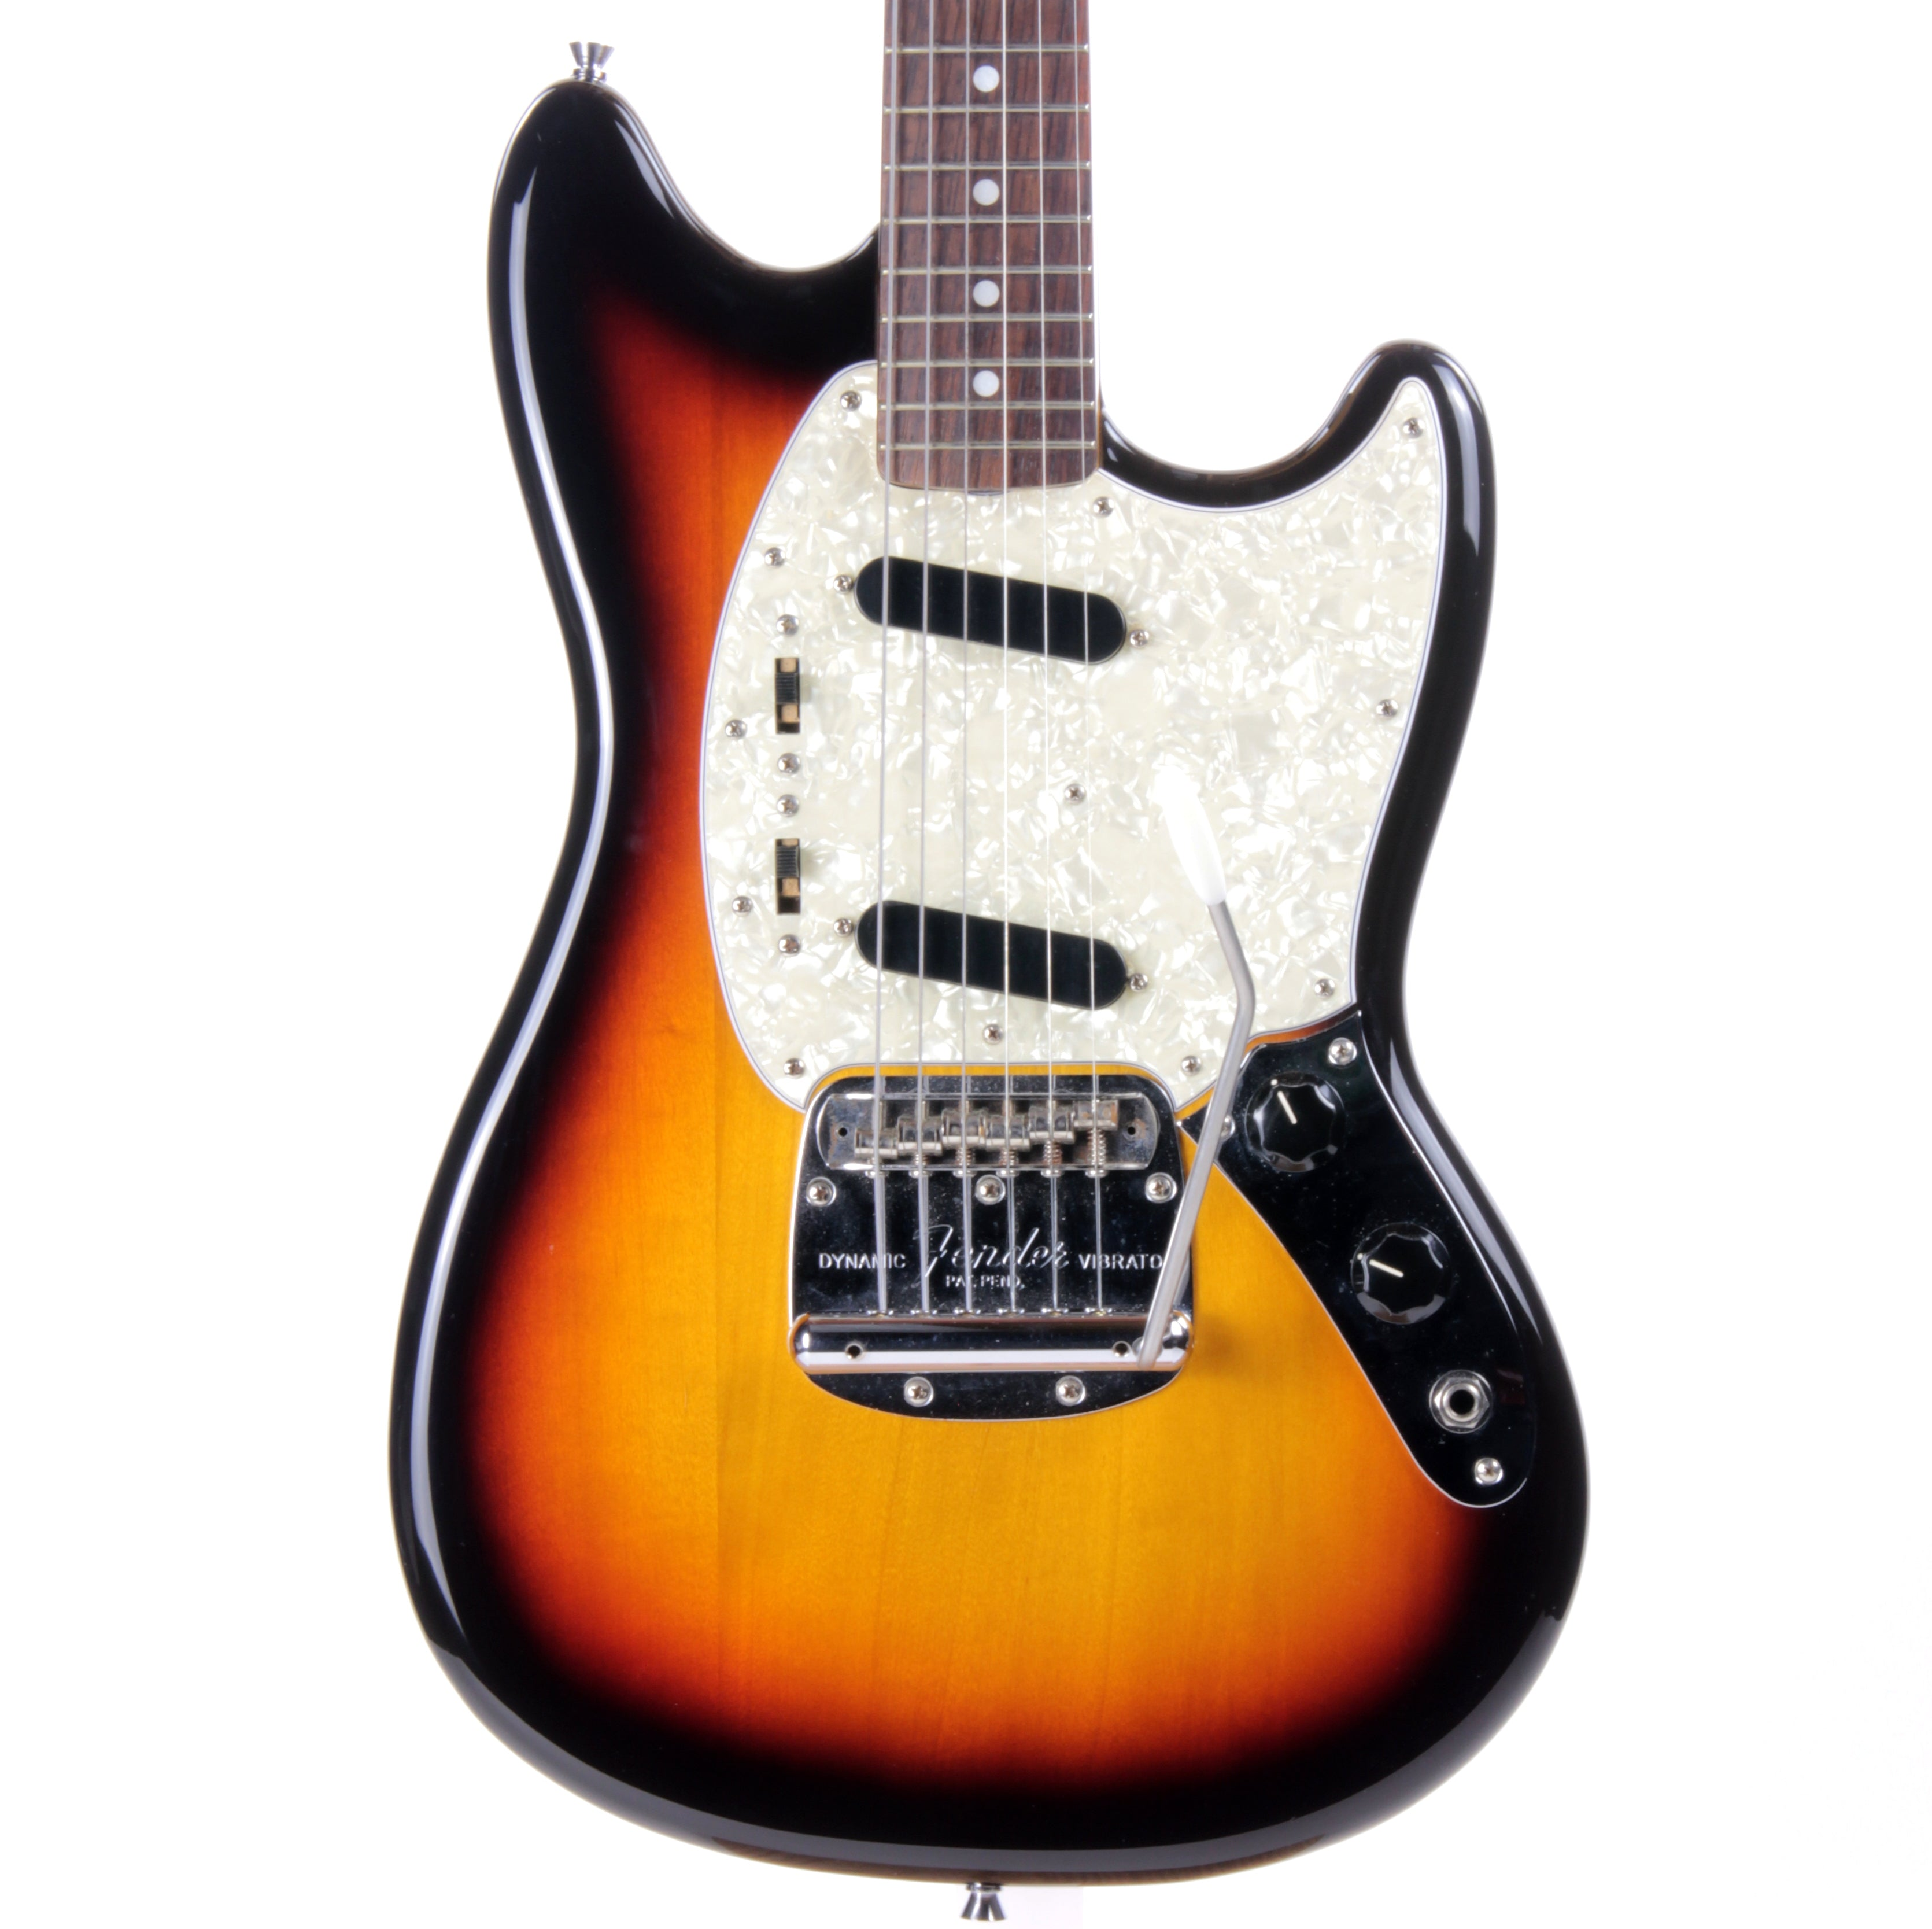 2015 Fender Japan MIJ '65 Mustang Sunburst - Chunky Neck, 1965 Reissue, MG65 Slab Board